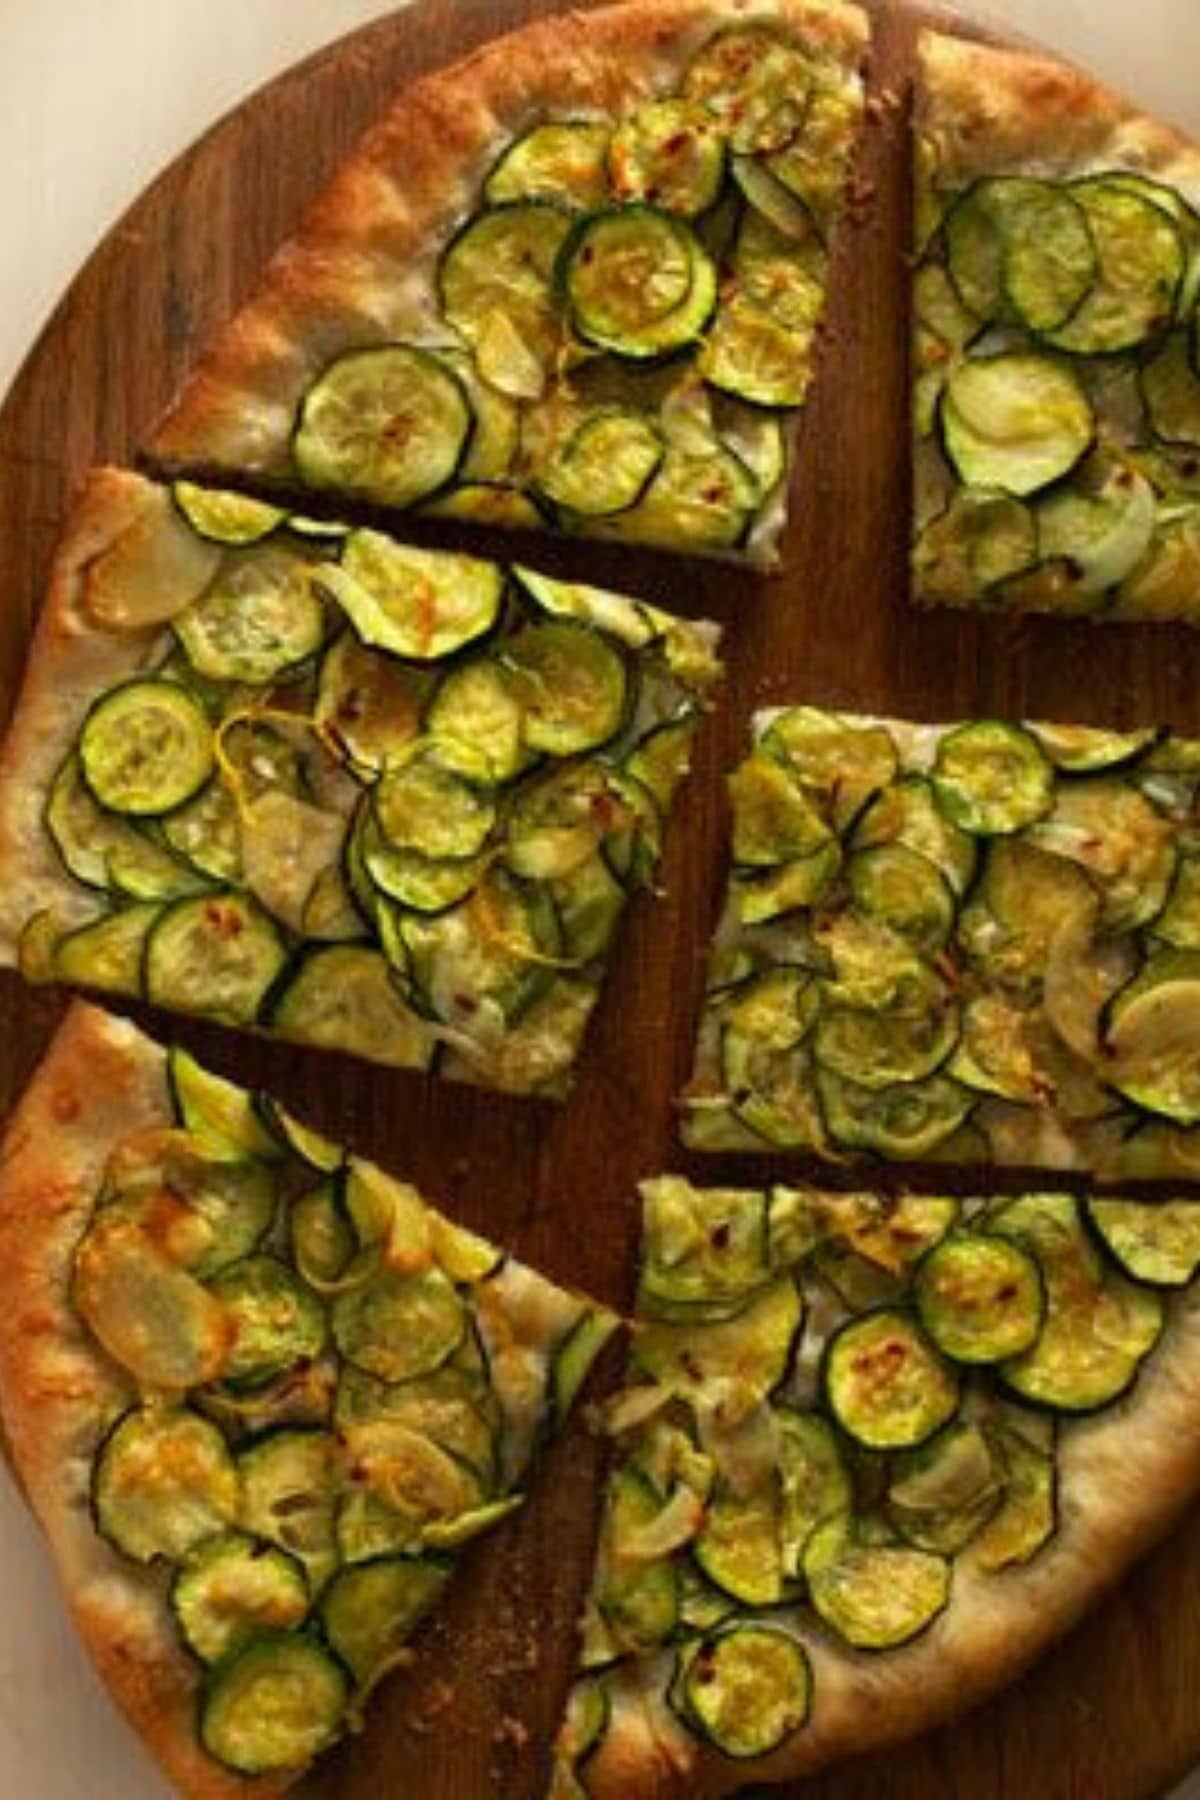 Pizza on cutting board topped with zucchini